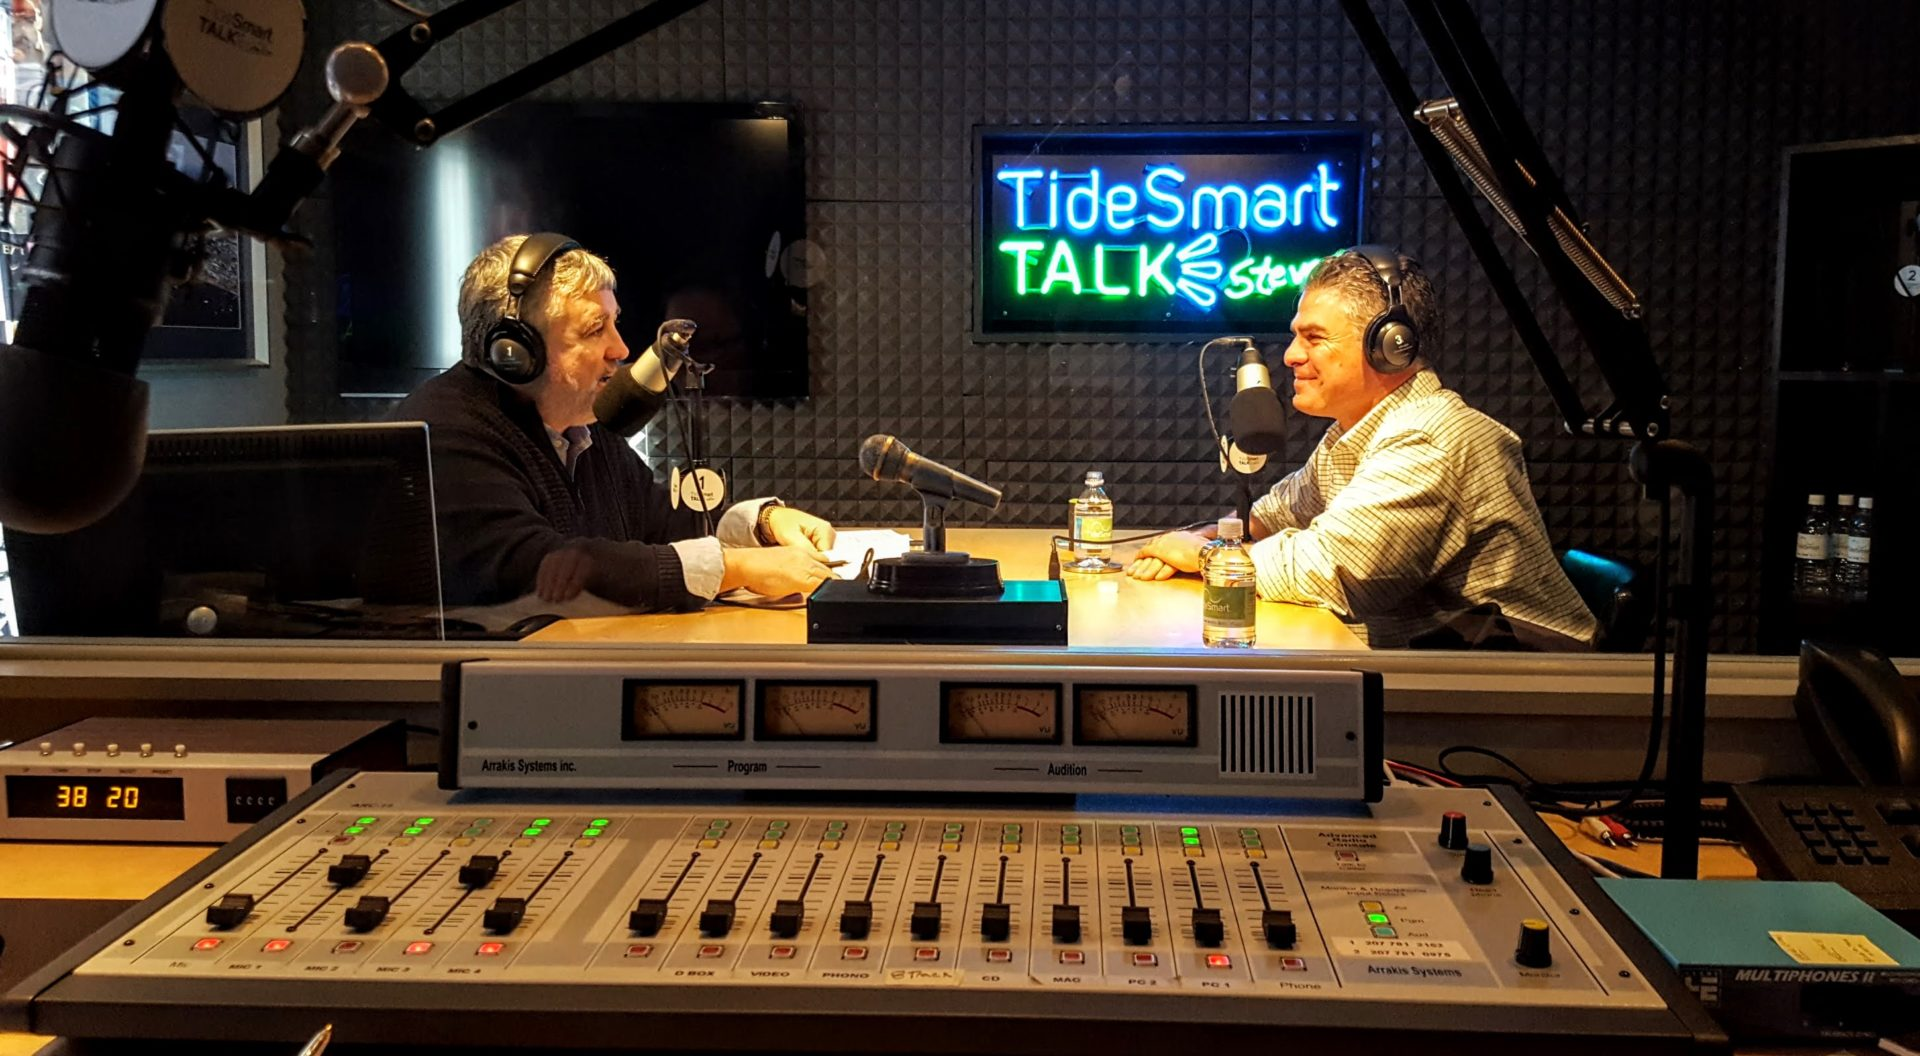 Host of TideSmart Talk with Stevoe, Steve Woods, welcomed Ethan Strimling, Mayor of Portland (at right).